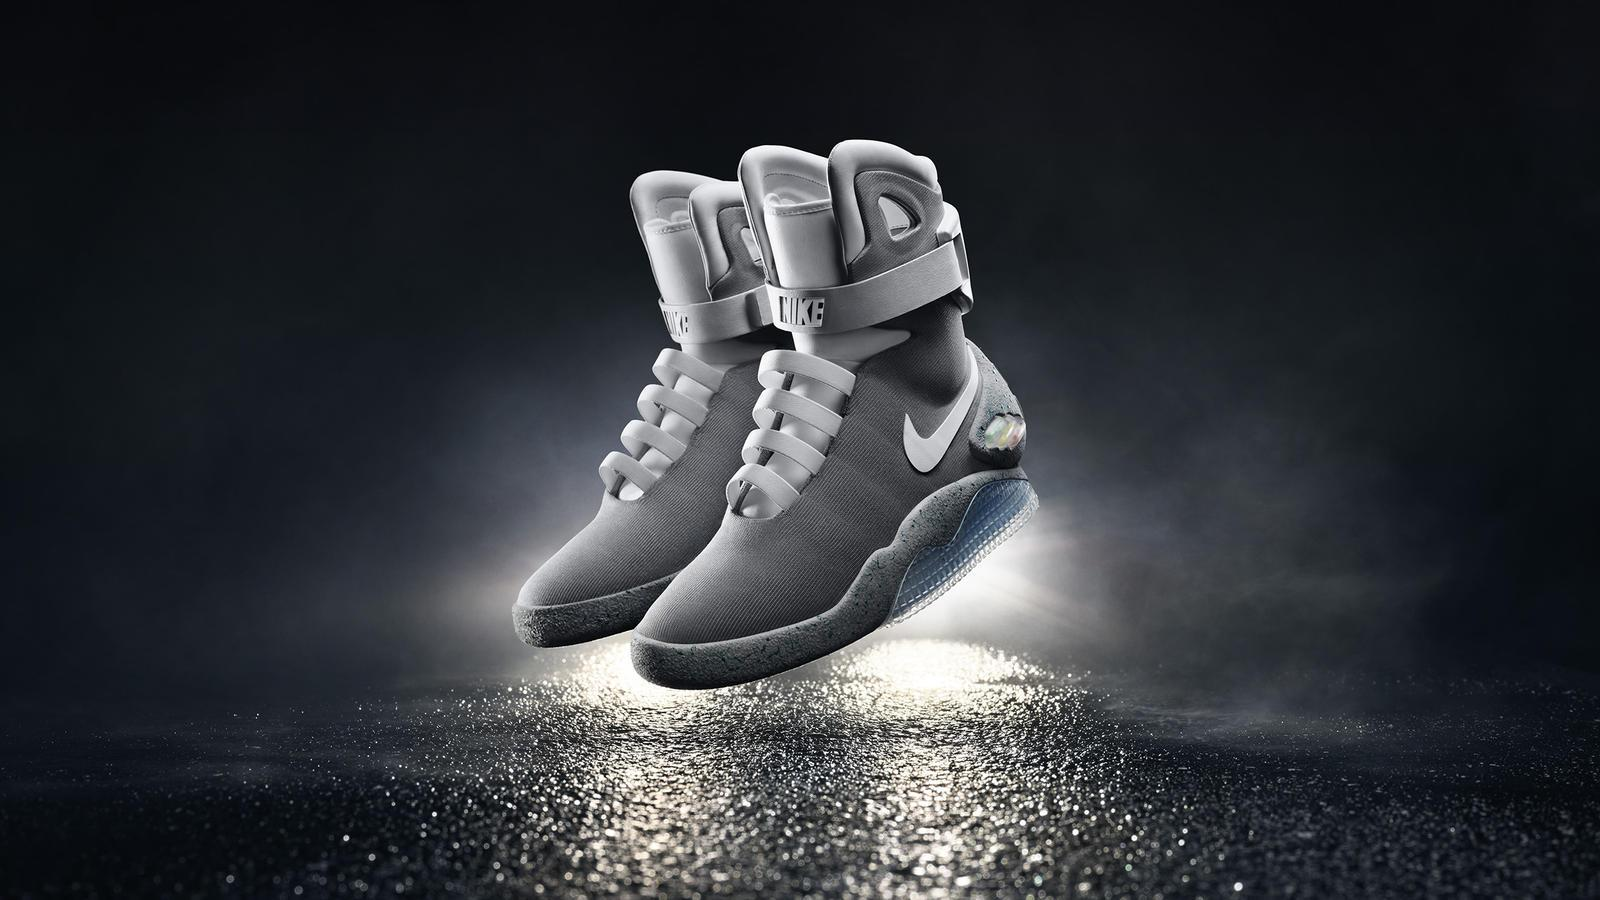 new nike shoes power laces 898685